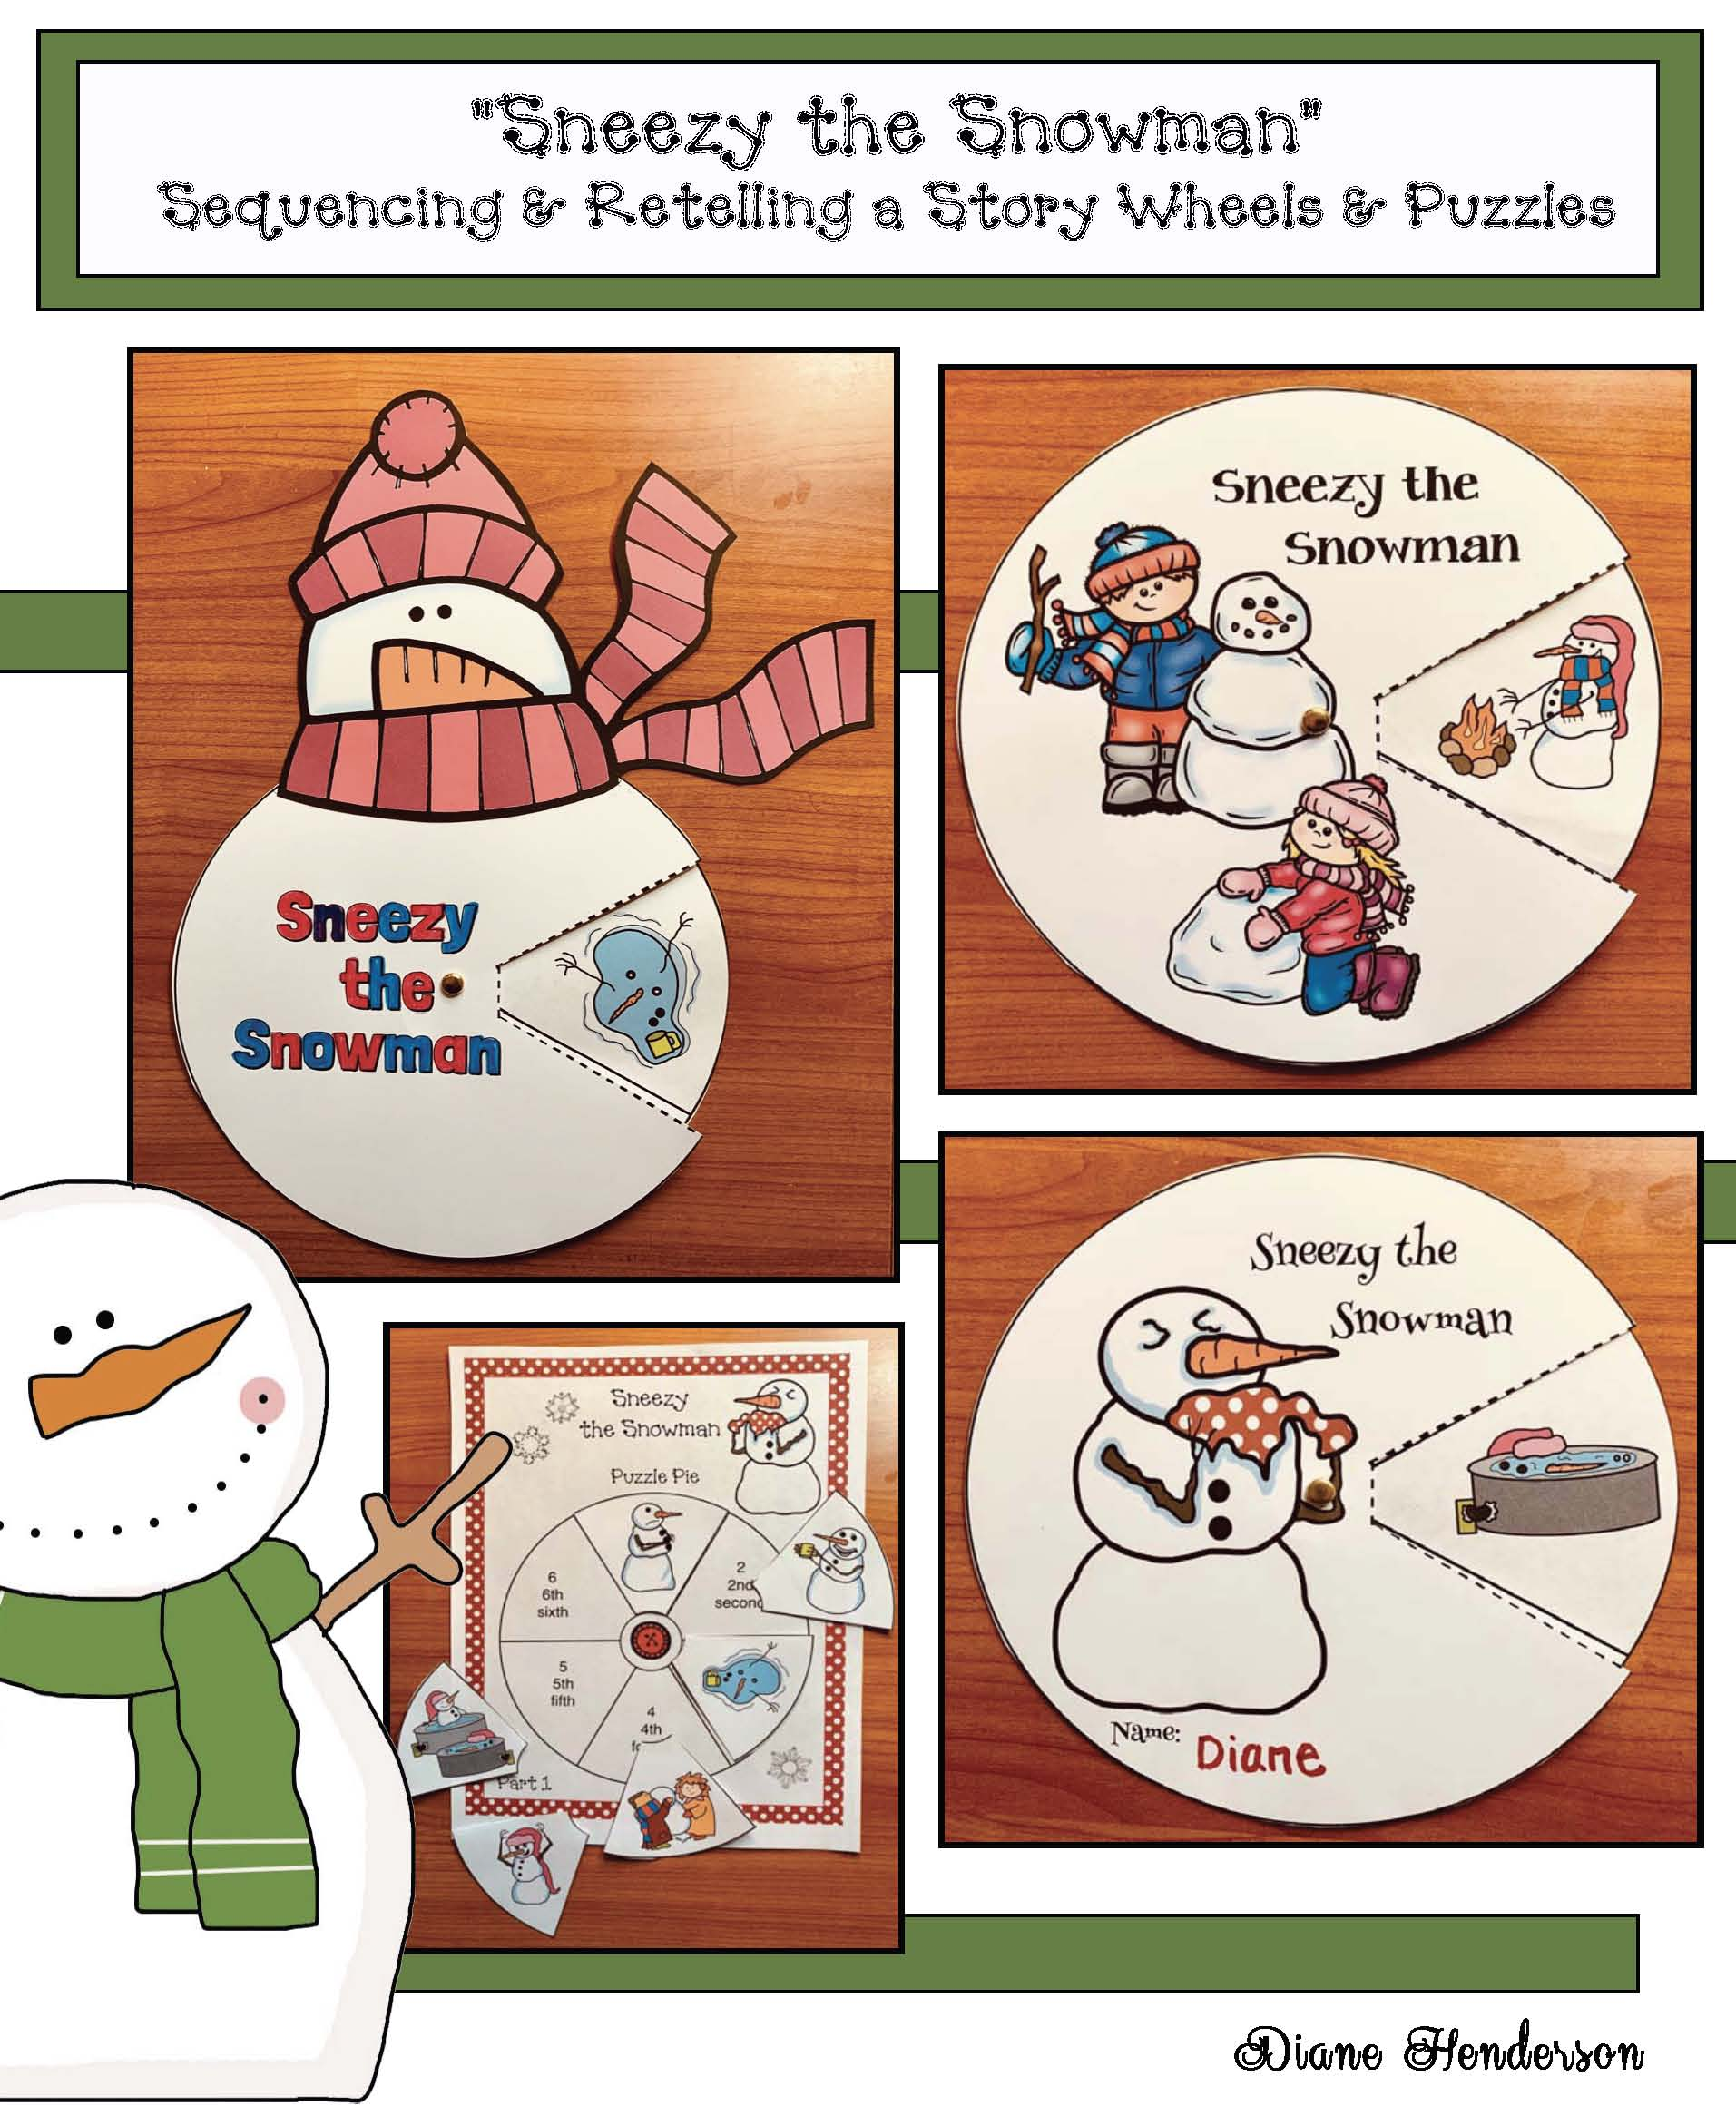 activities for sneezy the snowman, sneezy the snowman activities, snowman activities, snowman crafts, retelling and sequencing a story activities